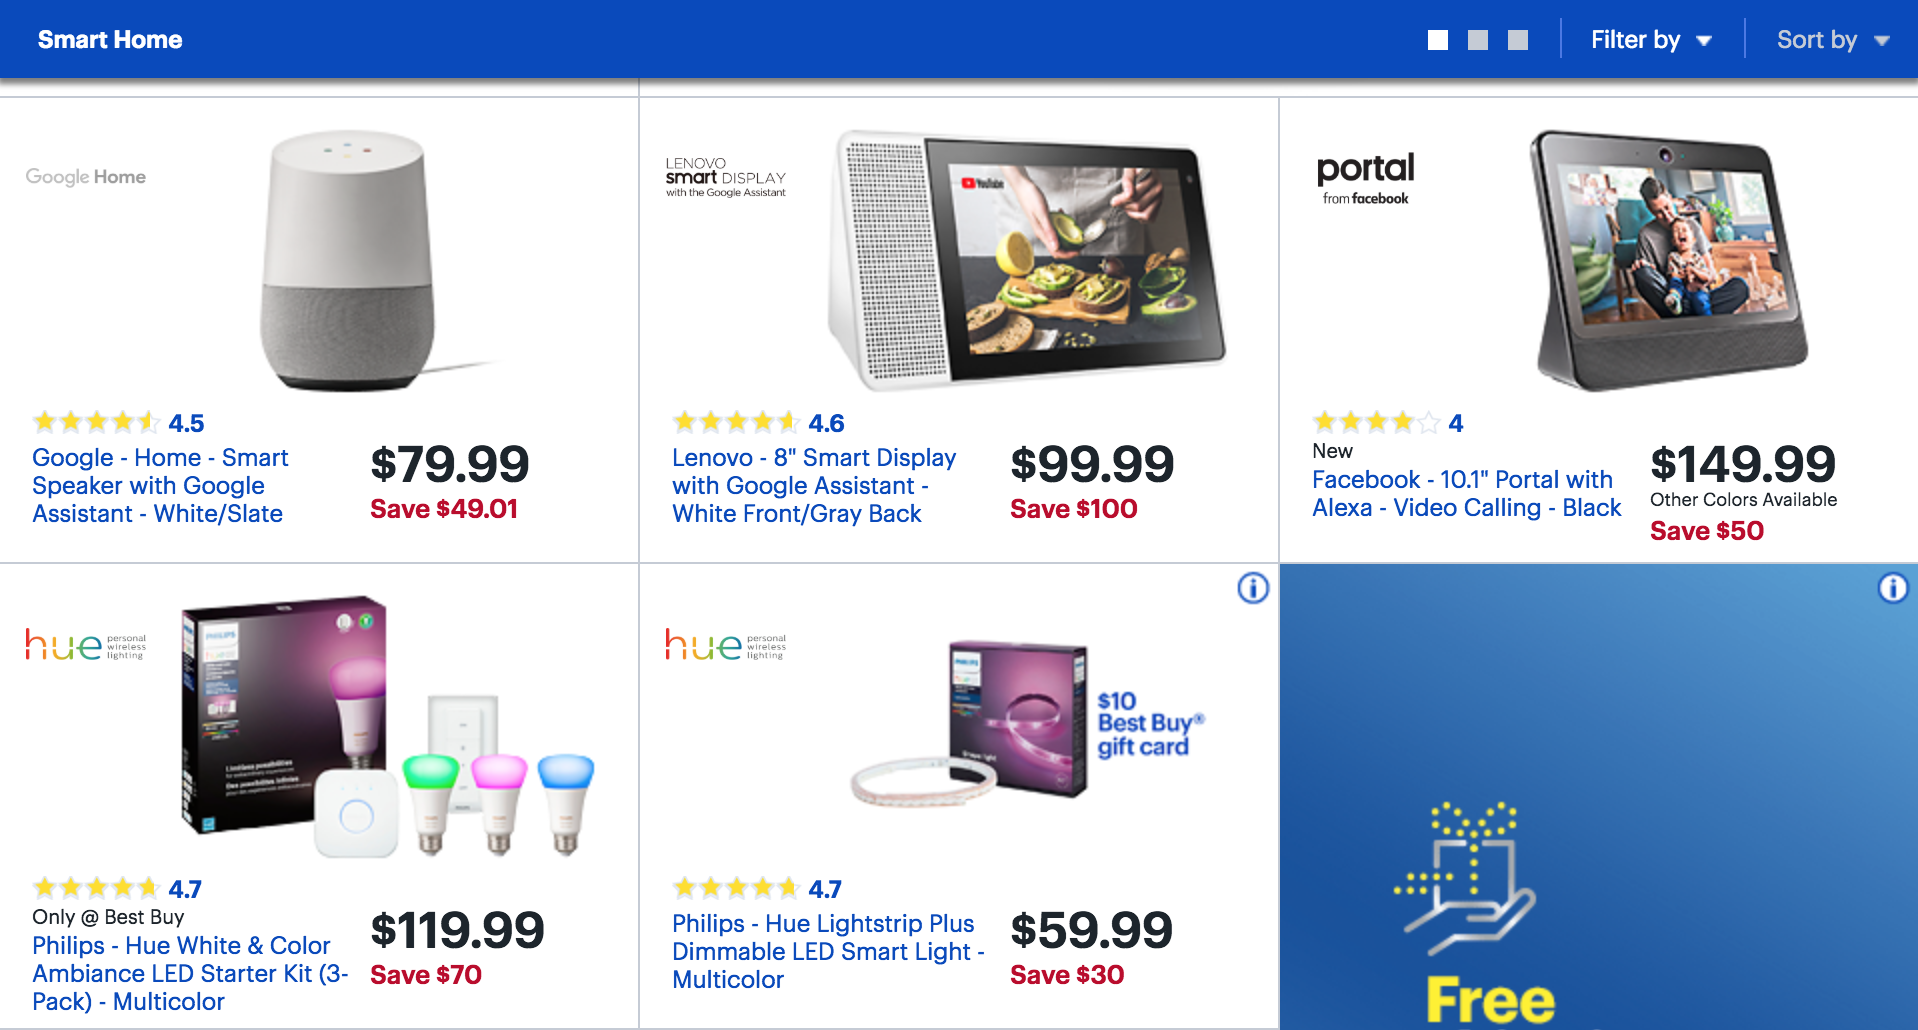 Facebook Portal is already $50 off ($150) at Best Buy on